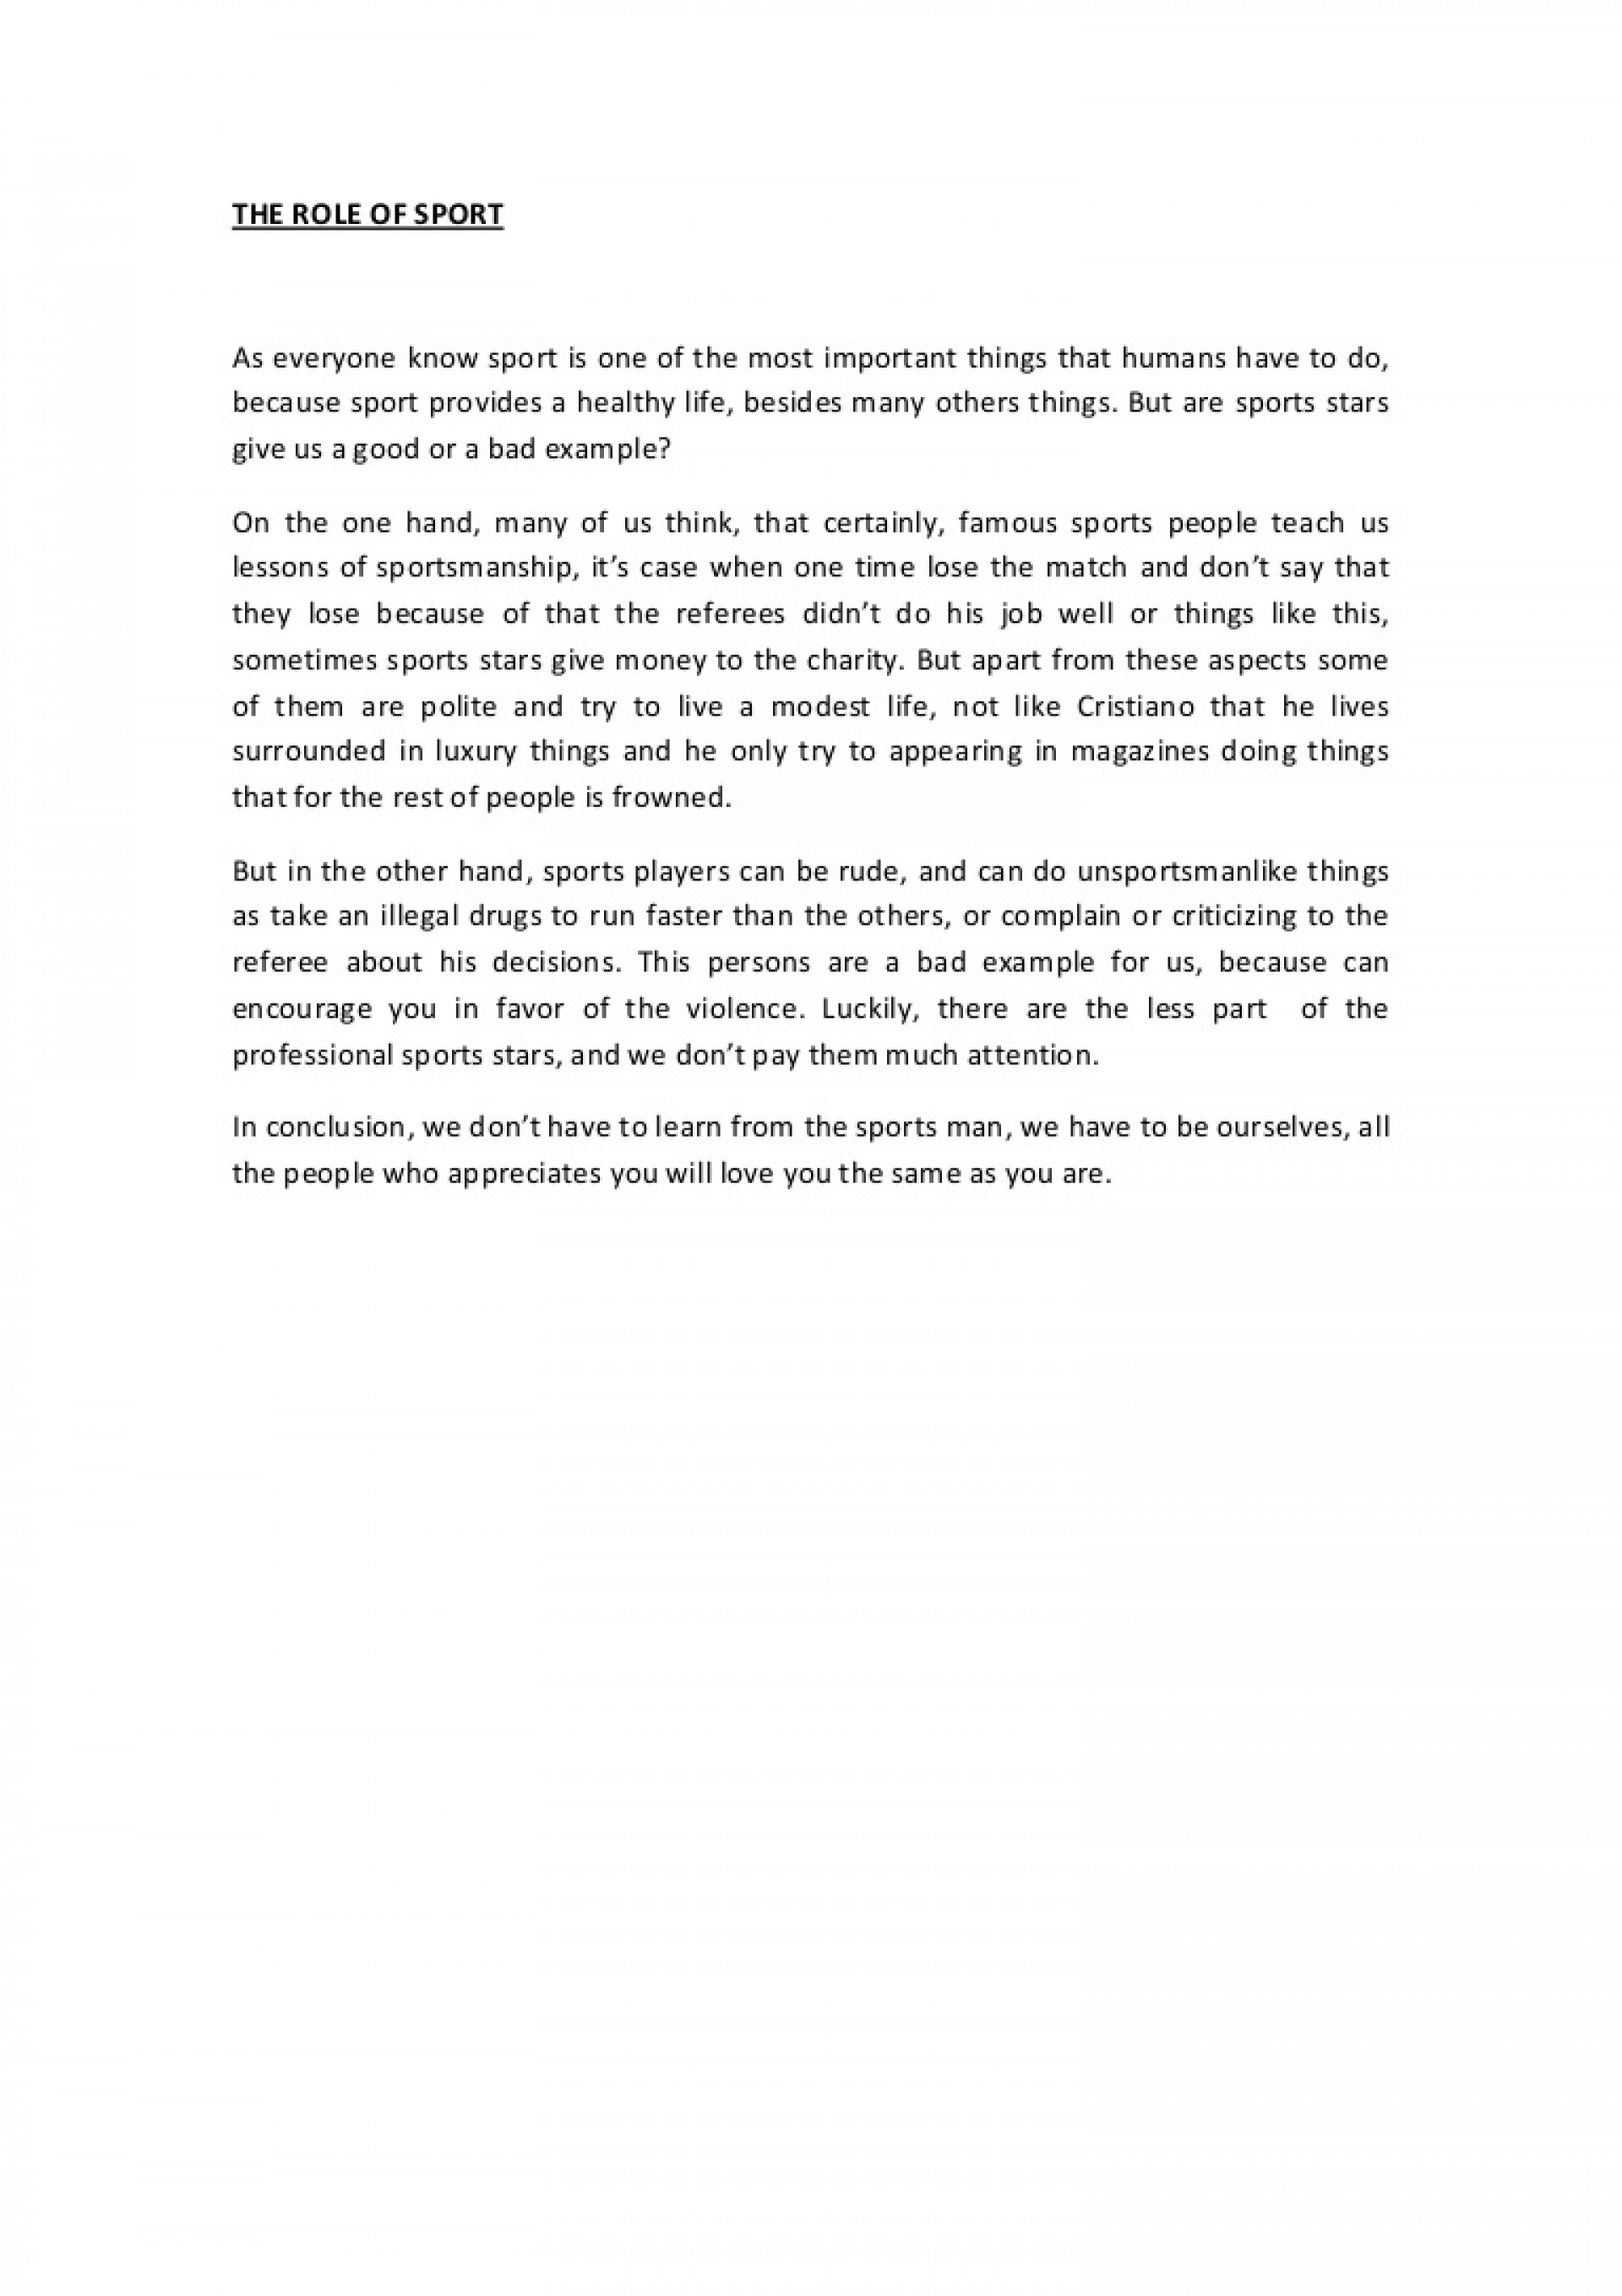 004 Sportsmanship Essay Example Discussionessayaboutsport Phpapp02 Thumbnail Shocking Ideas Pdf In Hindi 1920